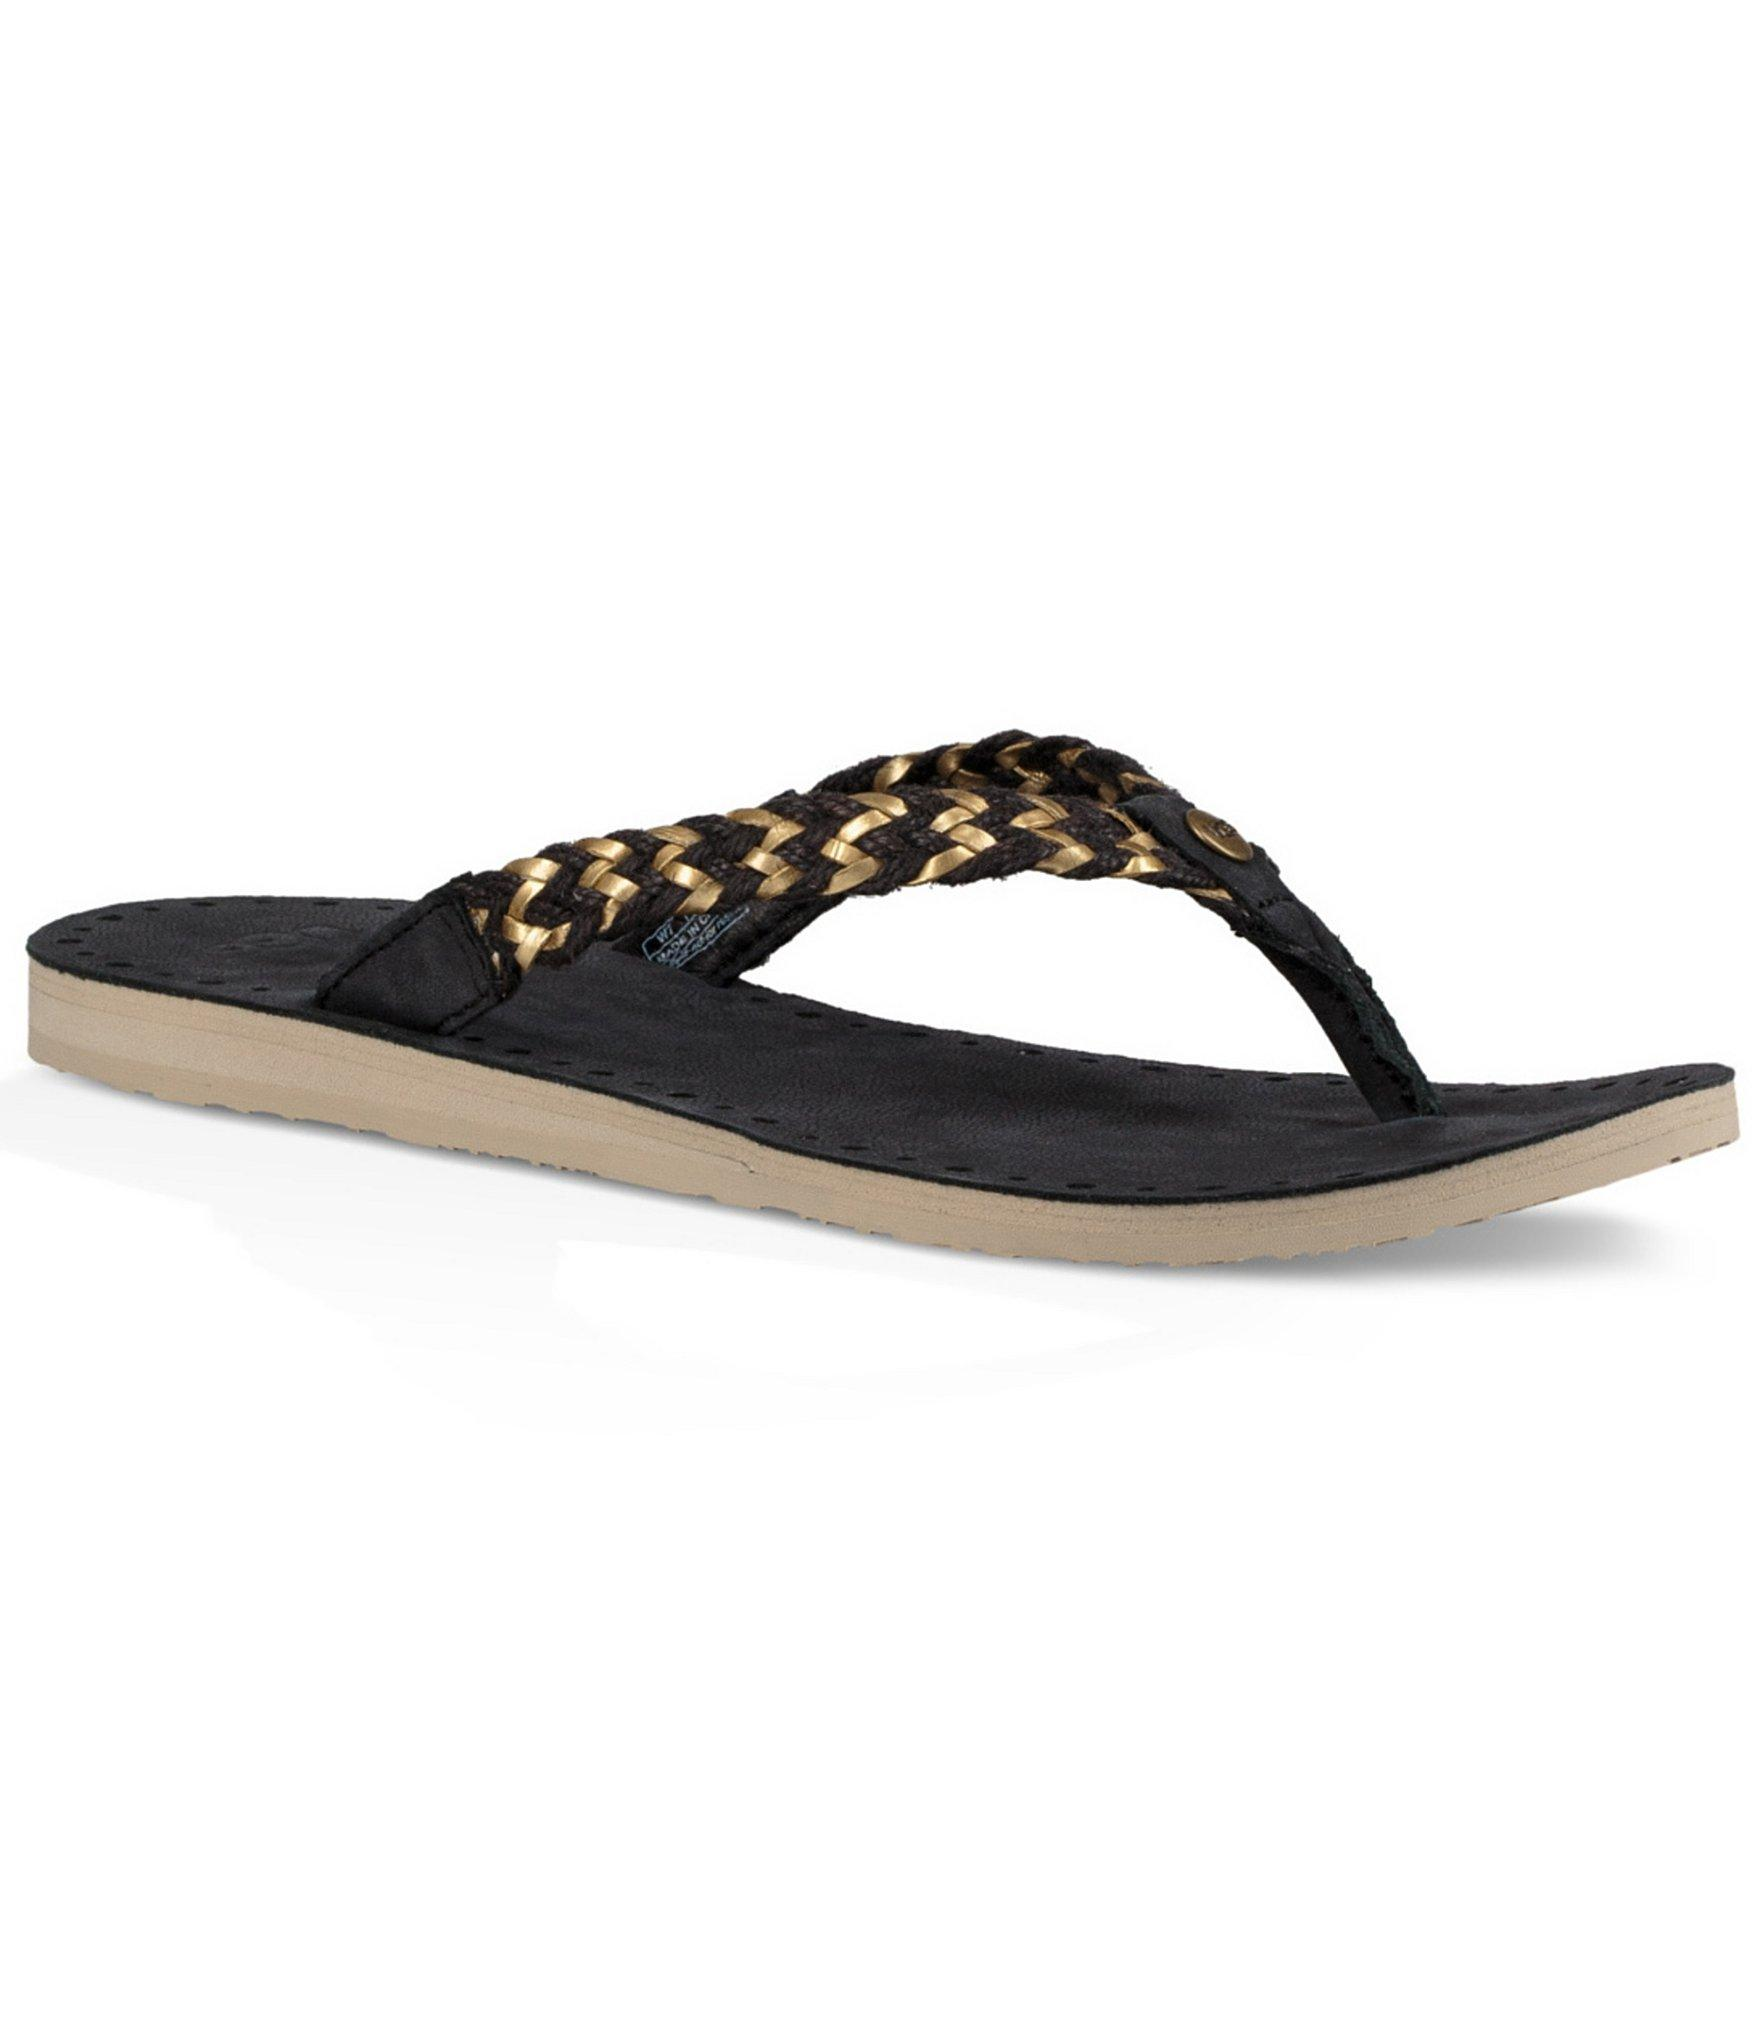 ugg navie ii flip flops in black lyst. Black Bedroom Furniture Sets. Home Design Ideas